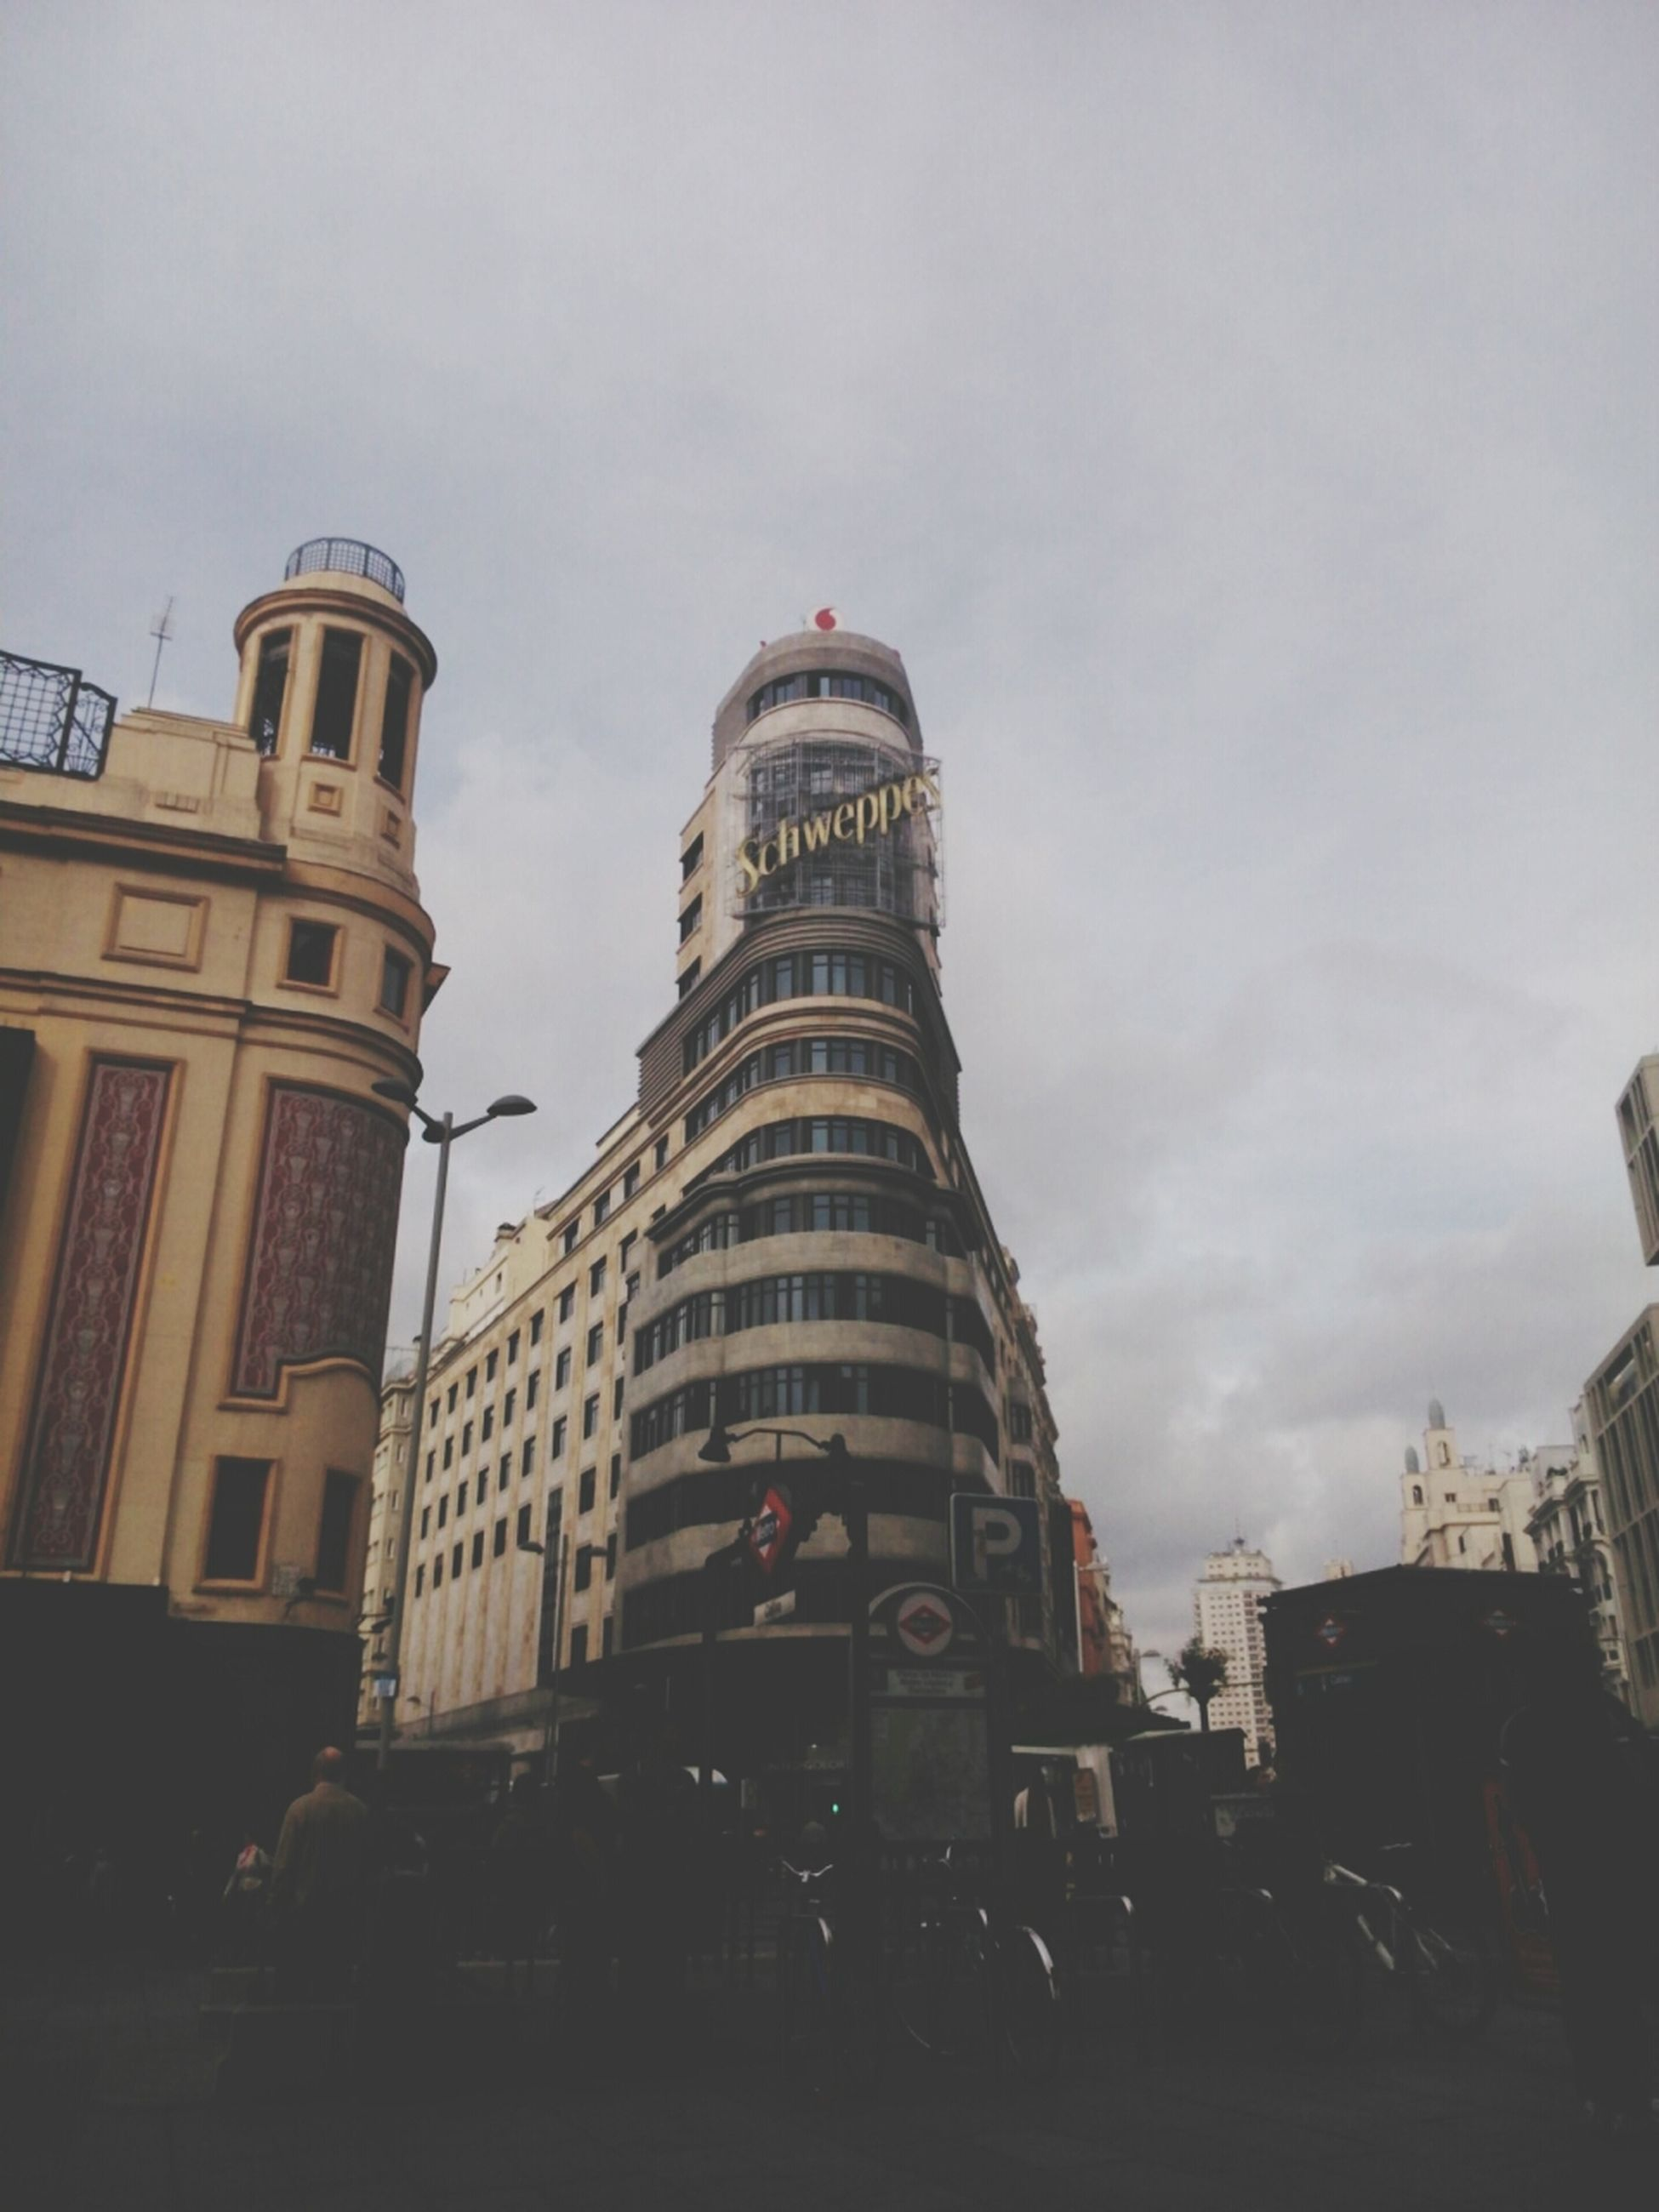 architecture, building exterior, built structure, city, sky, tower, low angle view, tall - high, building, city life, car, travel destinations, capital cities, transportation, street, skyscraper, travel, land vehicle, famous place, office building